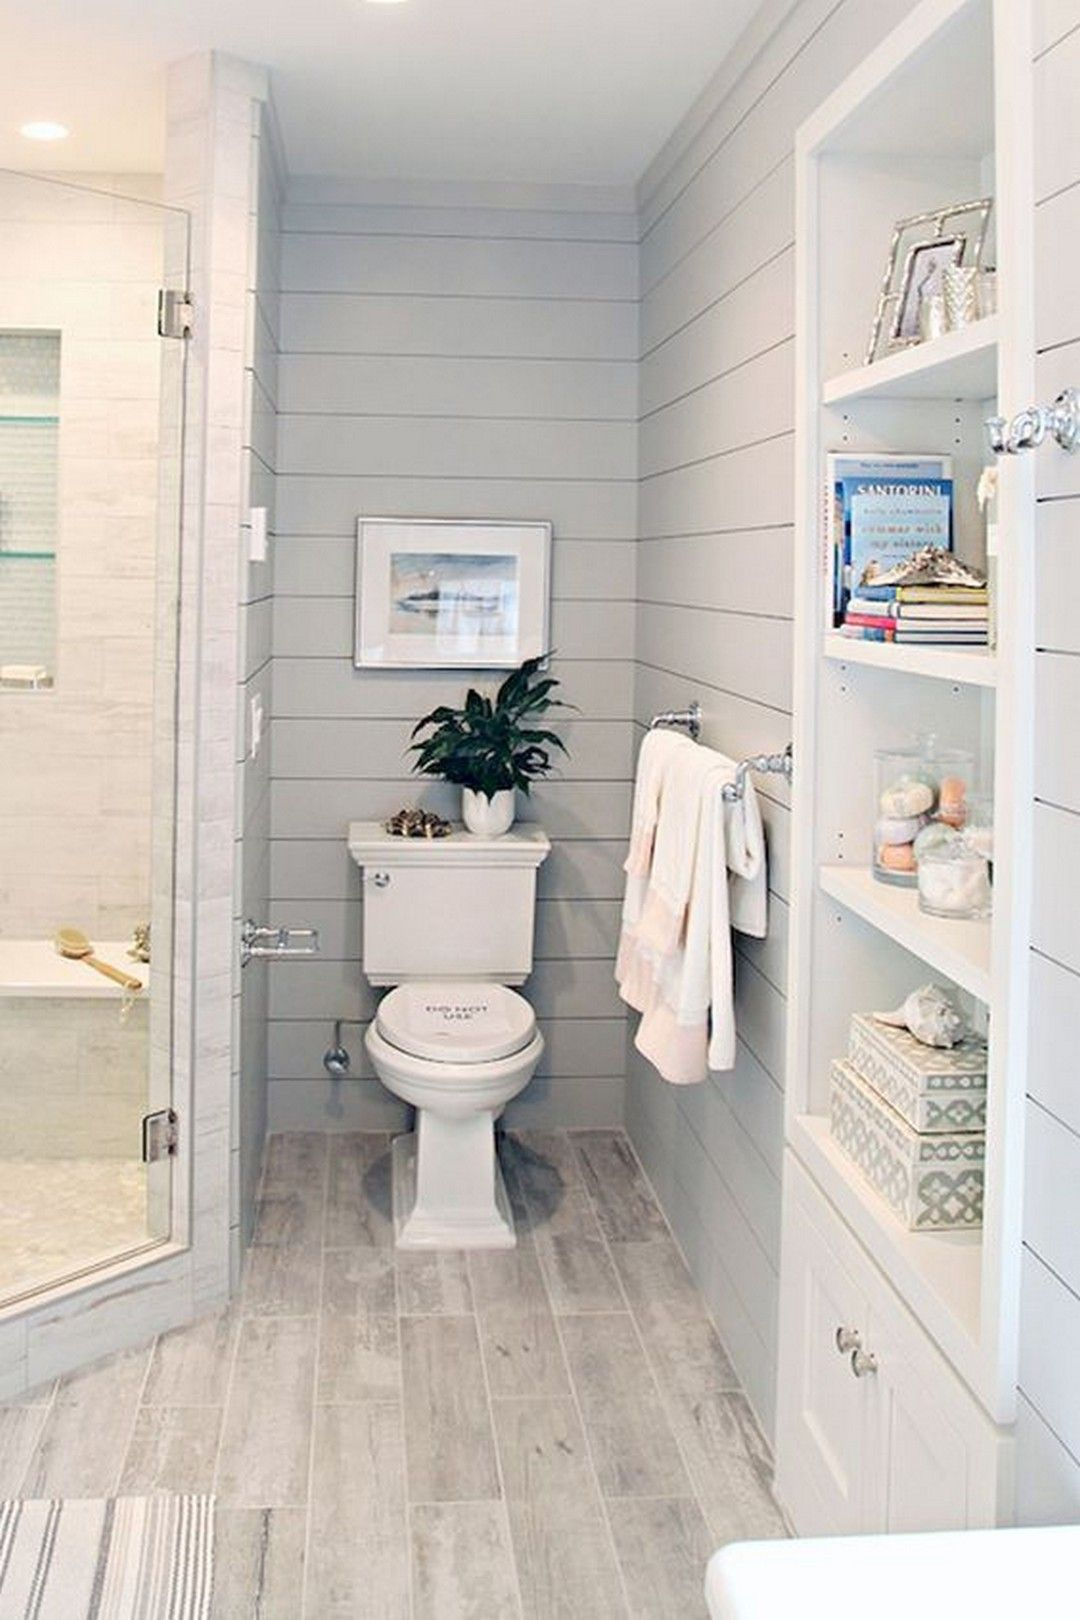 Convert Your Old Style Bathroom With This Small Master Bathroom Ideas Bathrooms Remodel Small Master Bathroom Small Bathroom Remodel